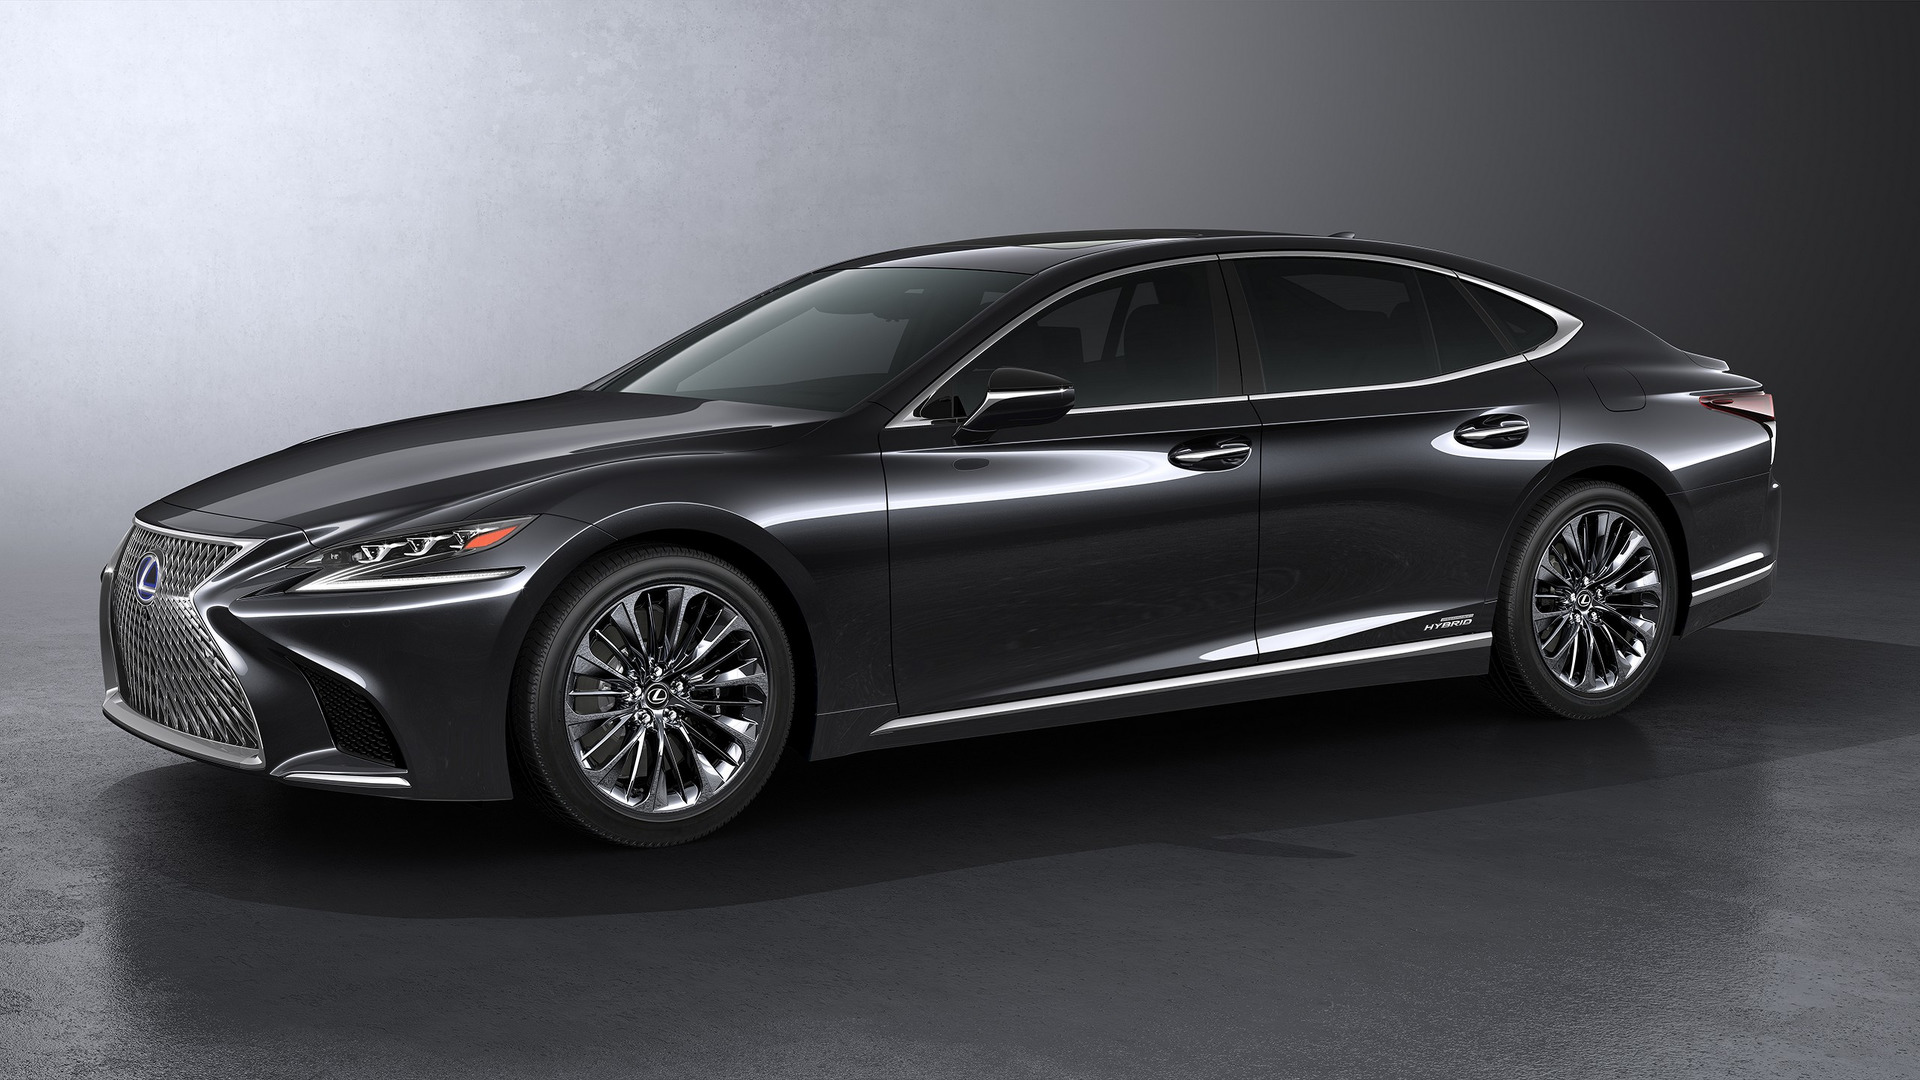 2018 lexus ls 500h is for the eco conscious luxury sedan buyer. Black Bedroom Furniture Sets. Home Design Ideas